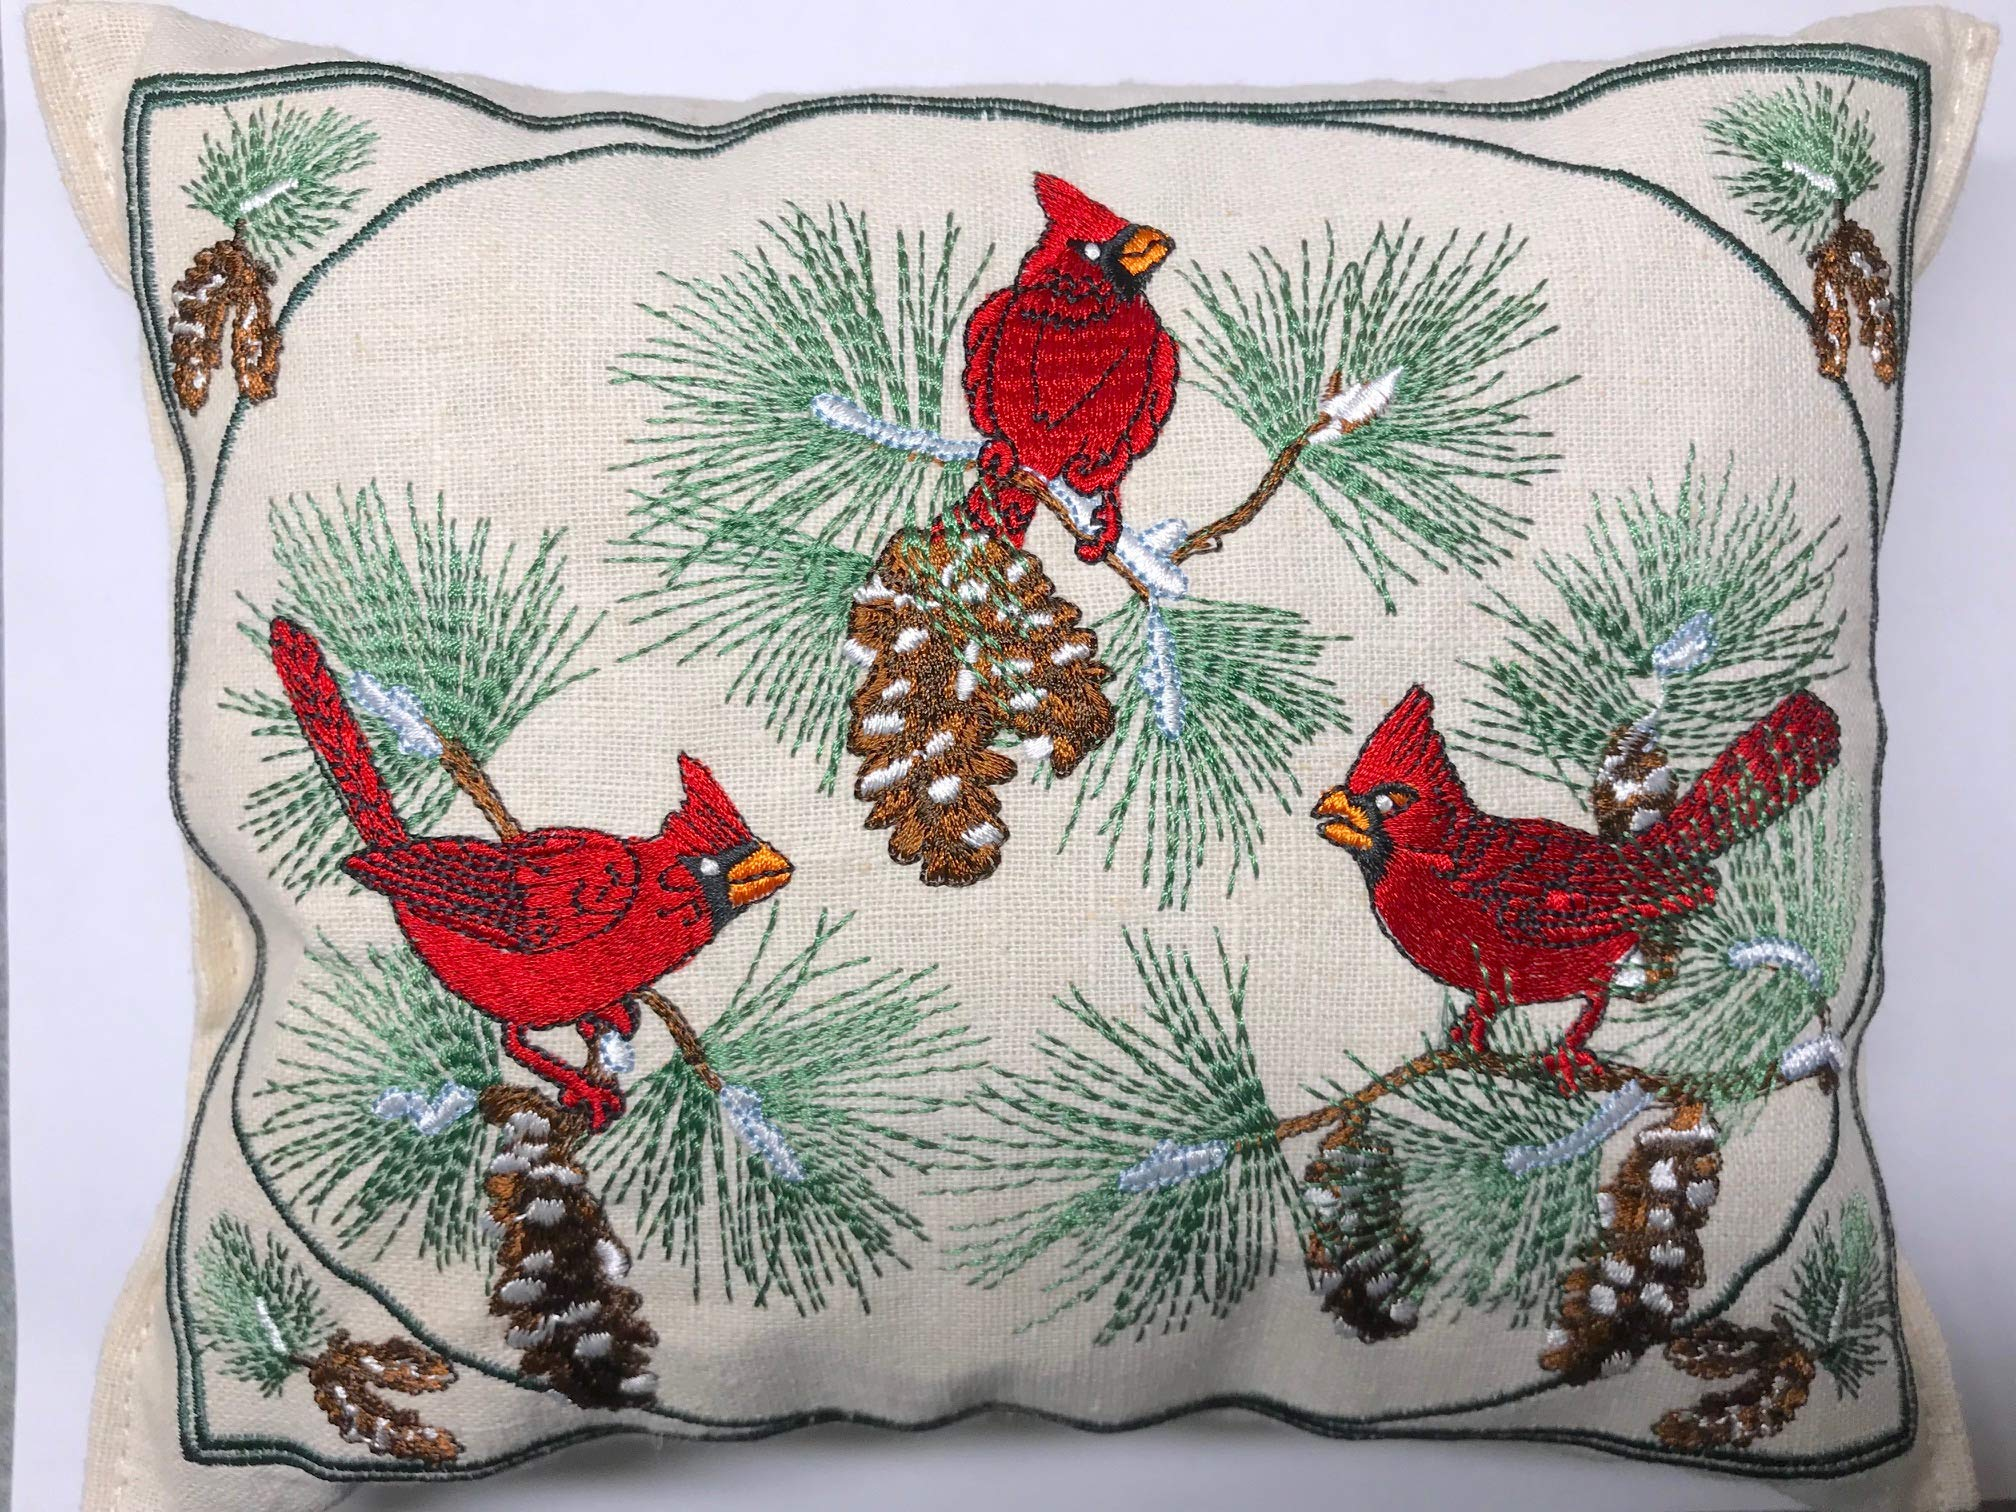 Paine's Balsam Fir Pillow 6''x9'' Embroidered Sampler Cardinals Pine Cones Birds by Paine's (Image #1)